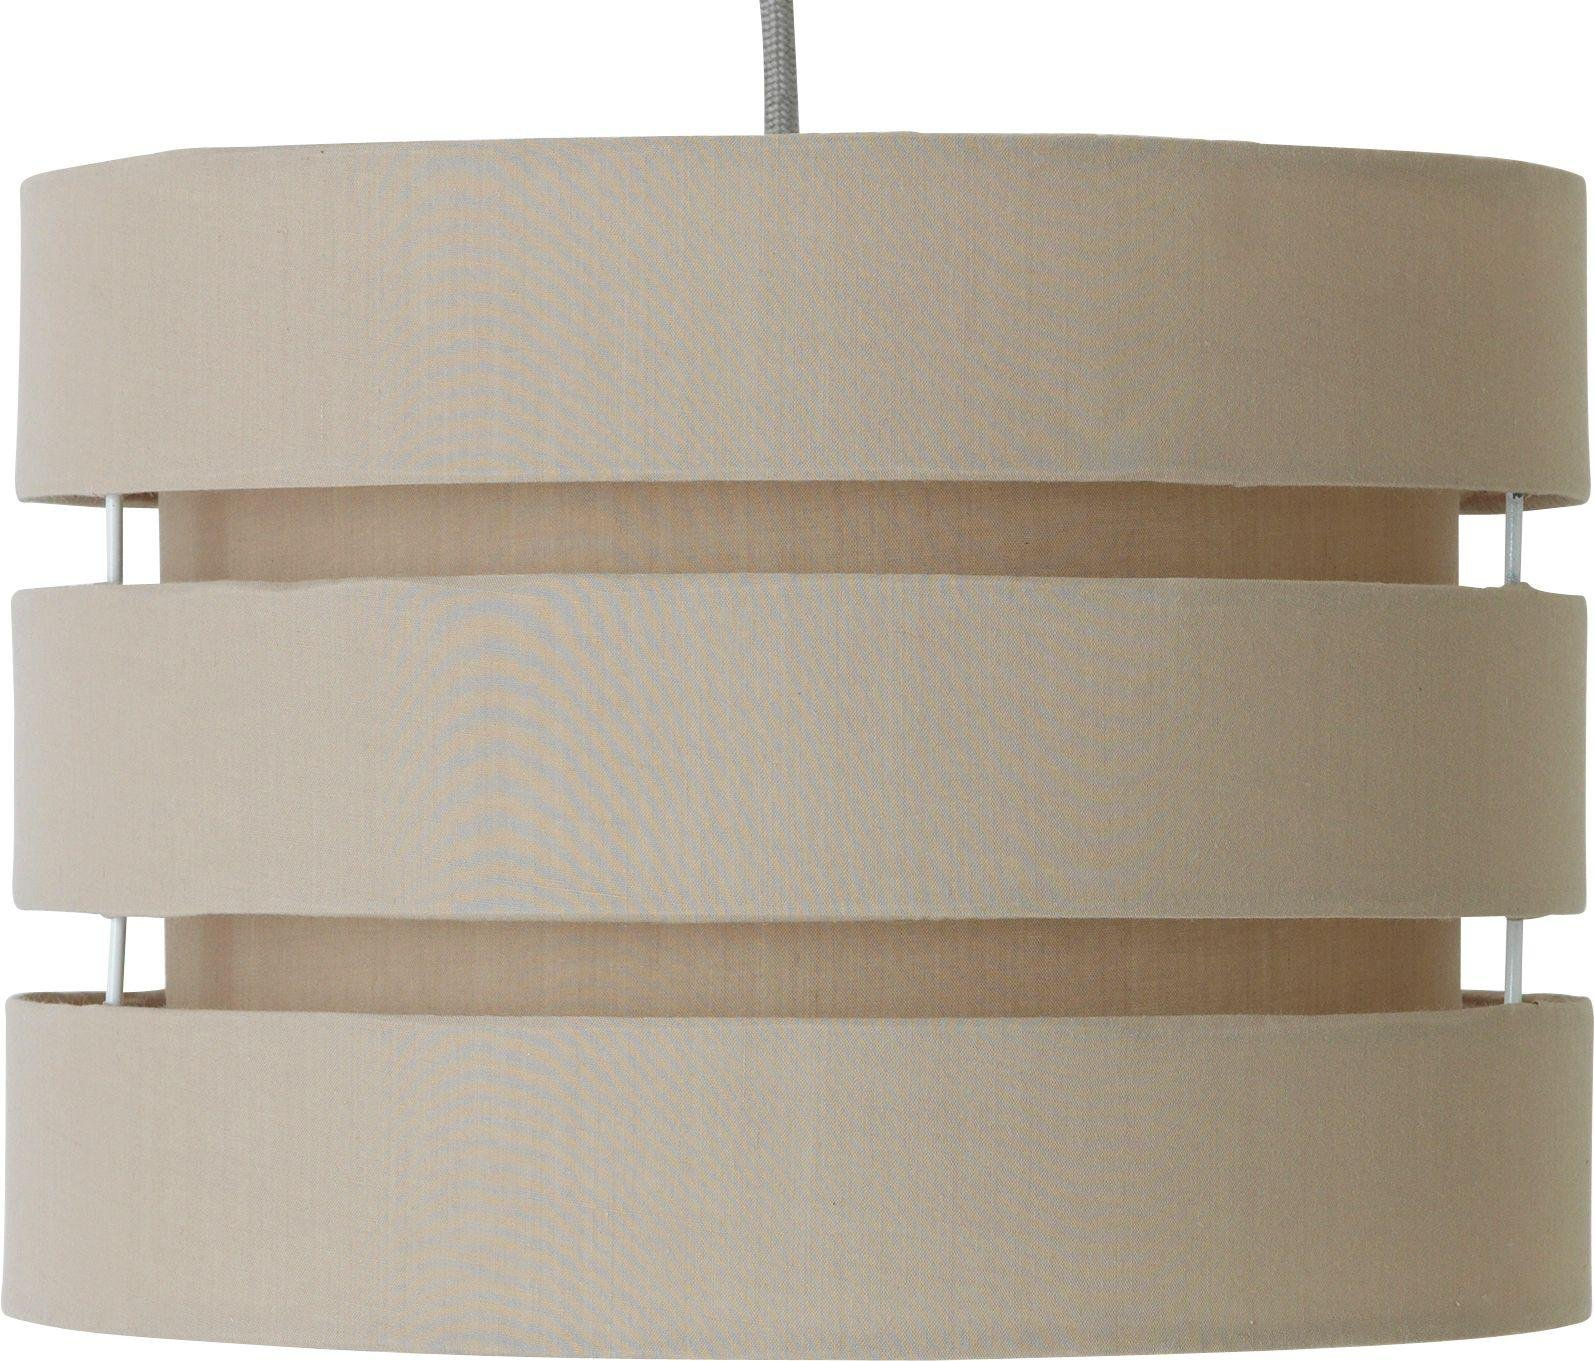 Argos Home 3 Tier Light Shade - Cafe Mocha